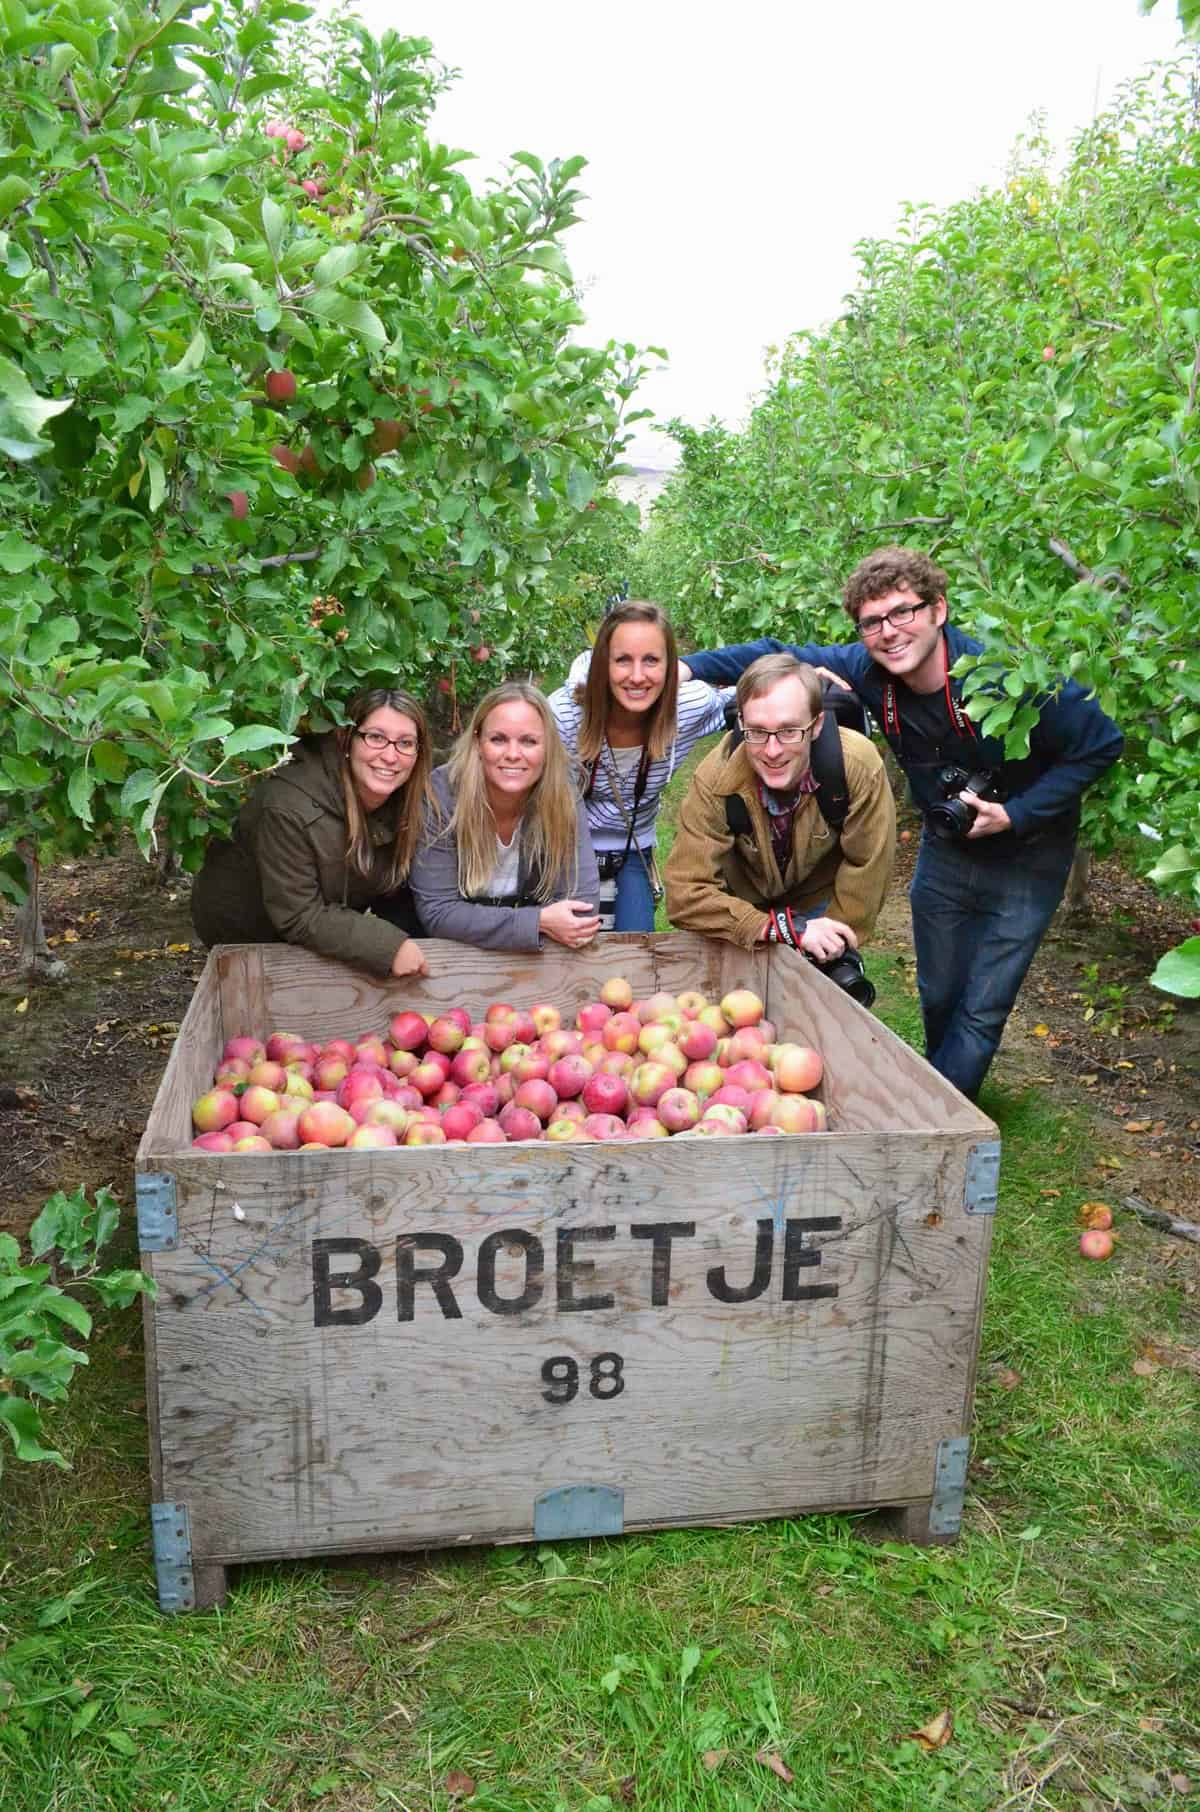 3 women and two men hunched over a crate of Broetje apples in an orchard.